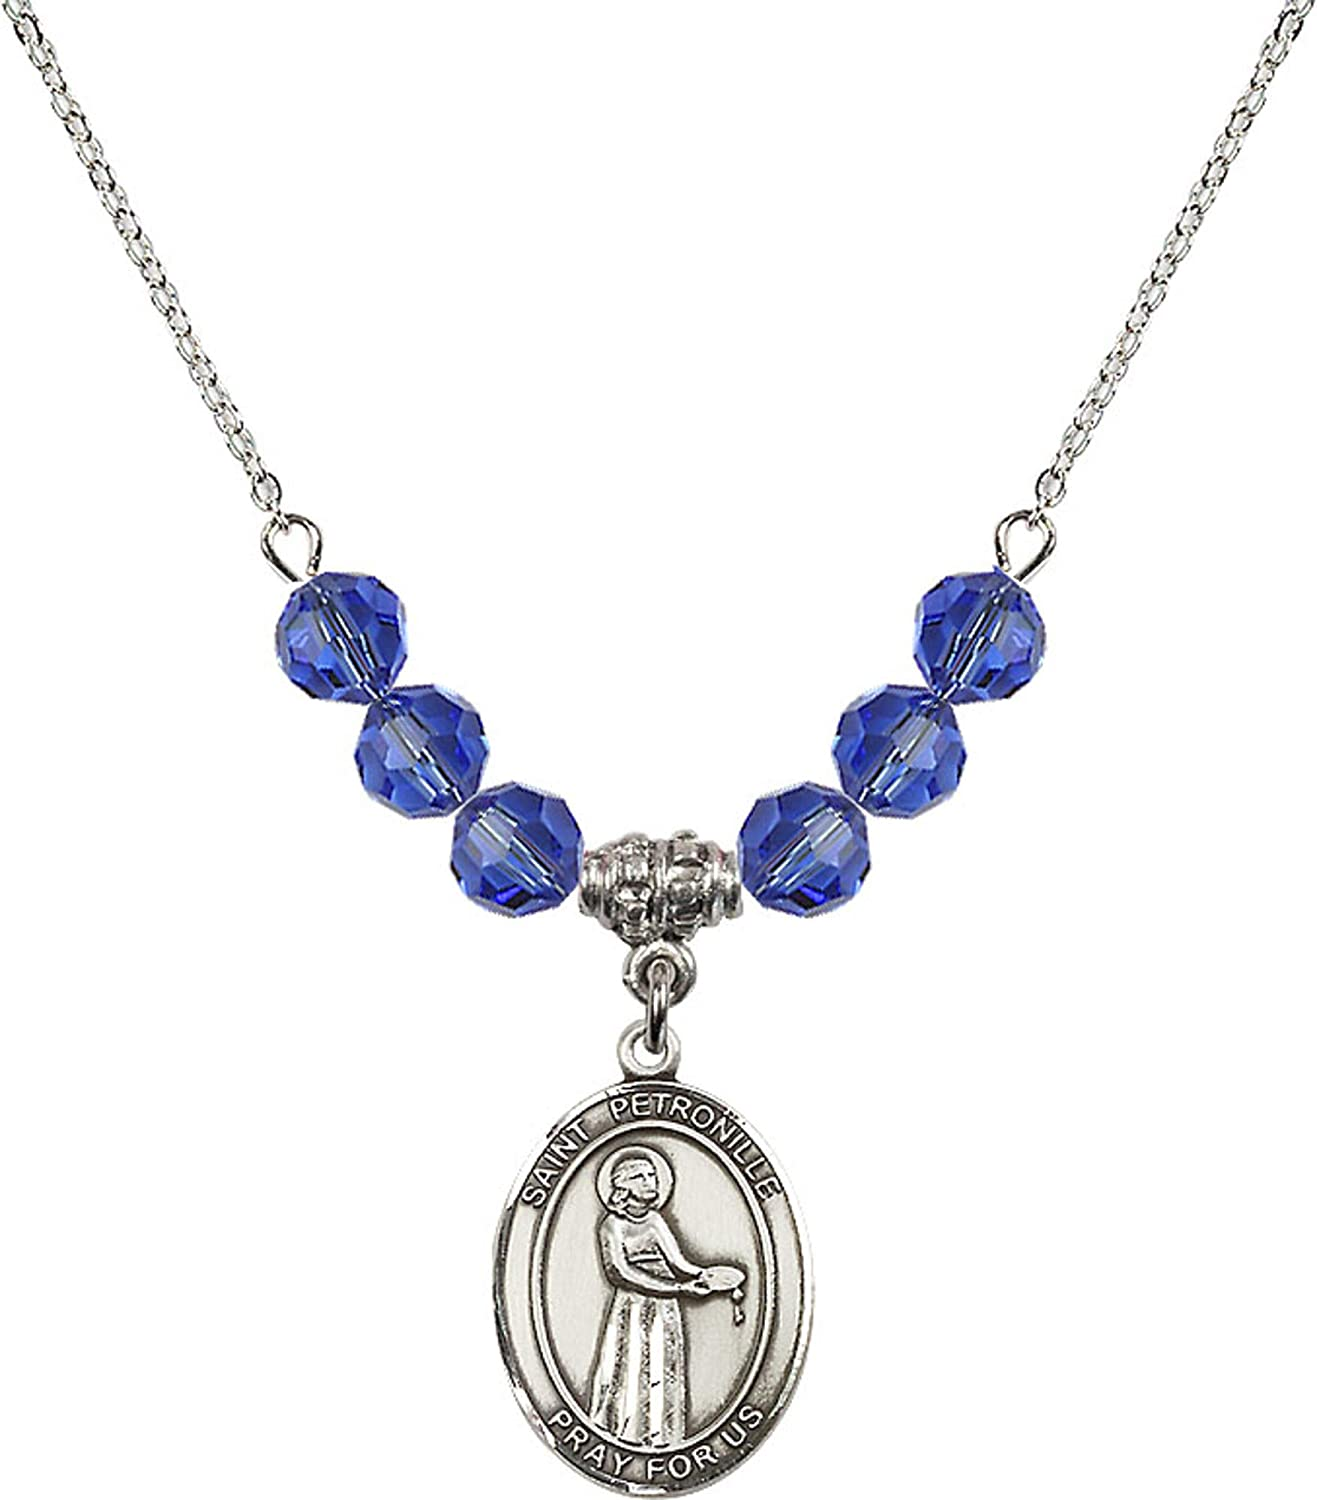 Bonyak Jewelry 18 Inch Rhodium Plated Necklace w// 6mm Blue September Birth Month Stone Beads and Saint Petronille Charm